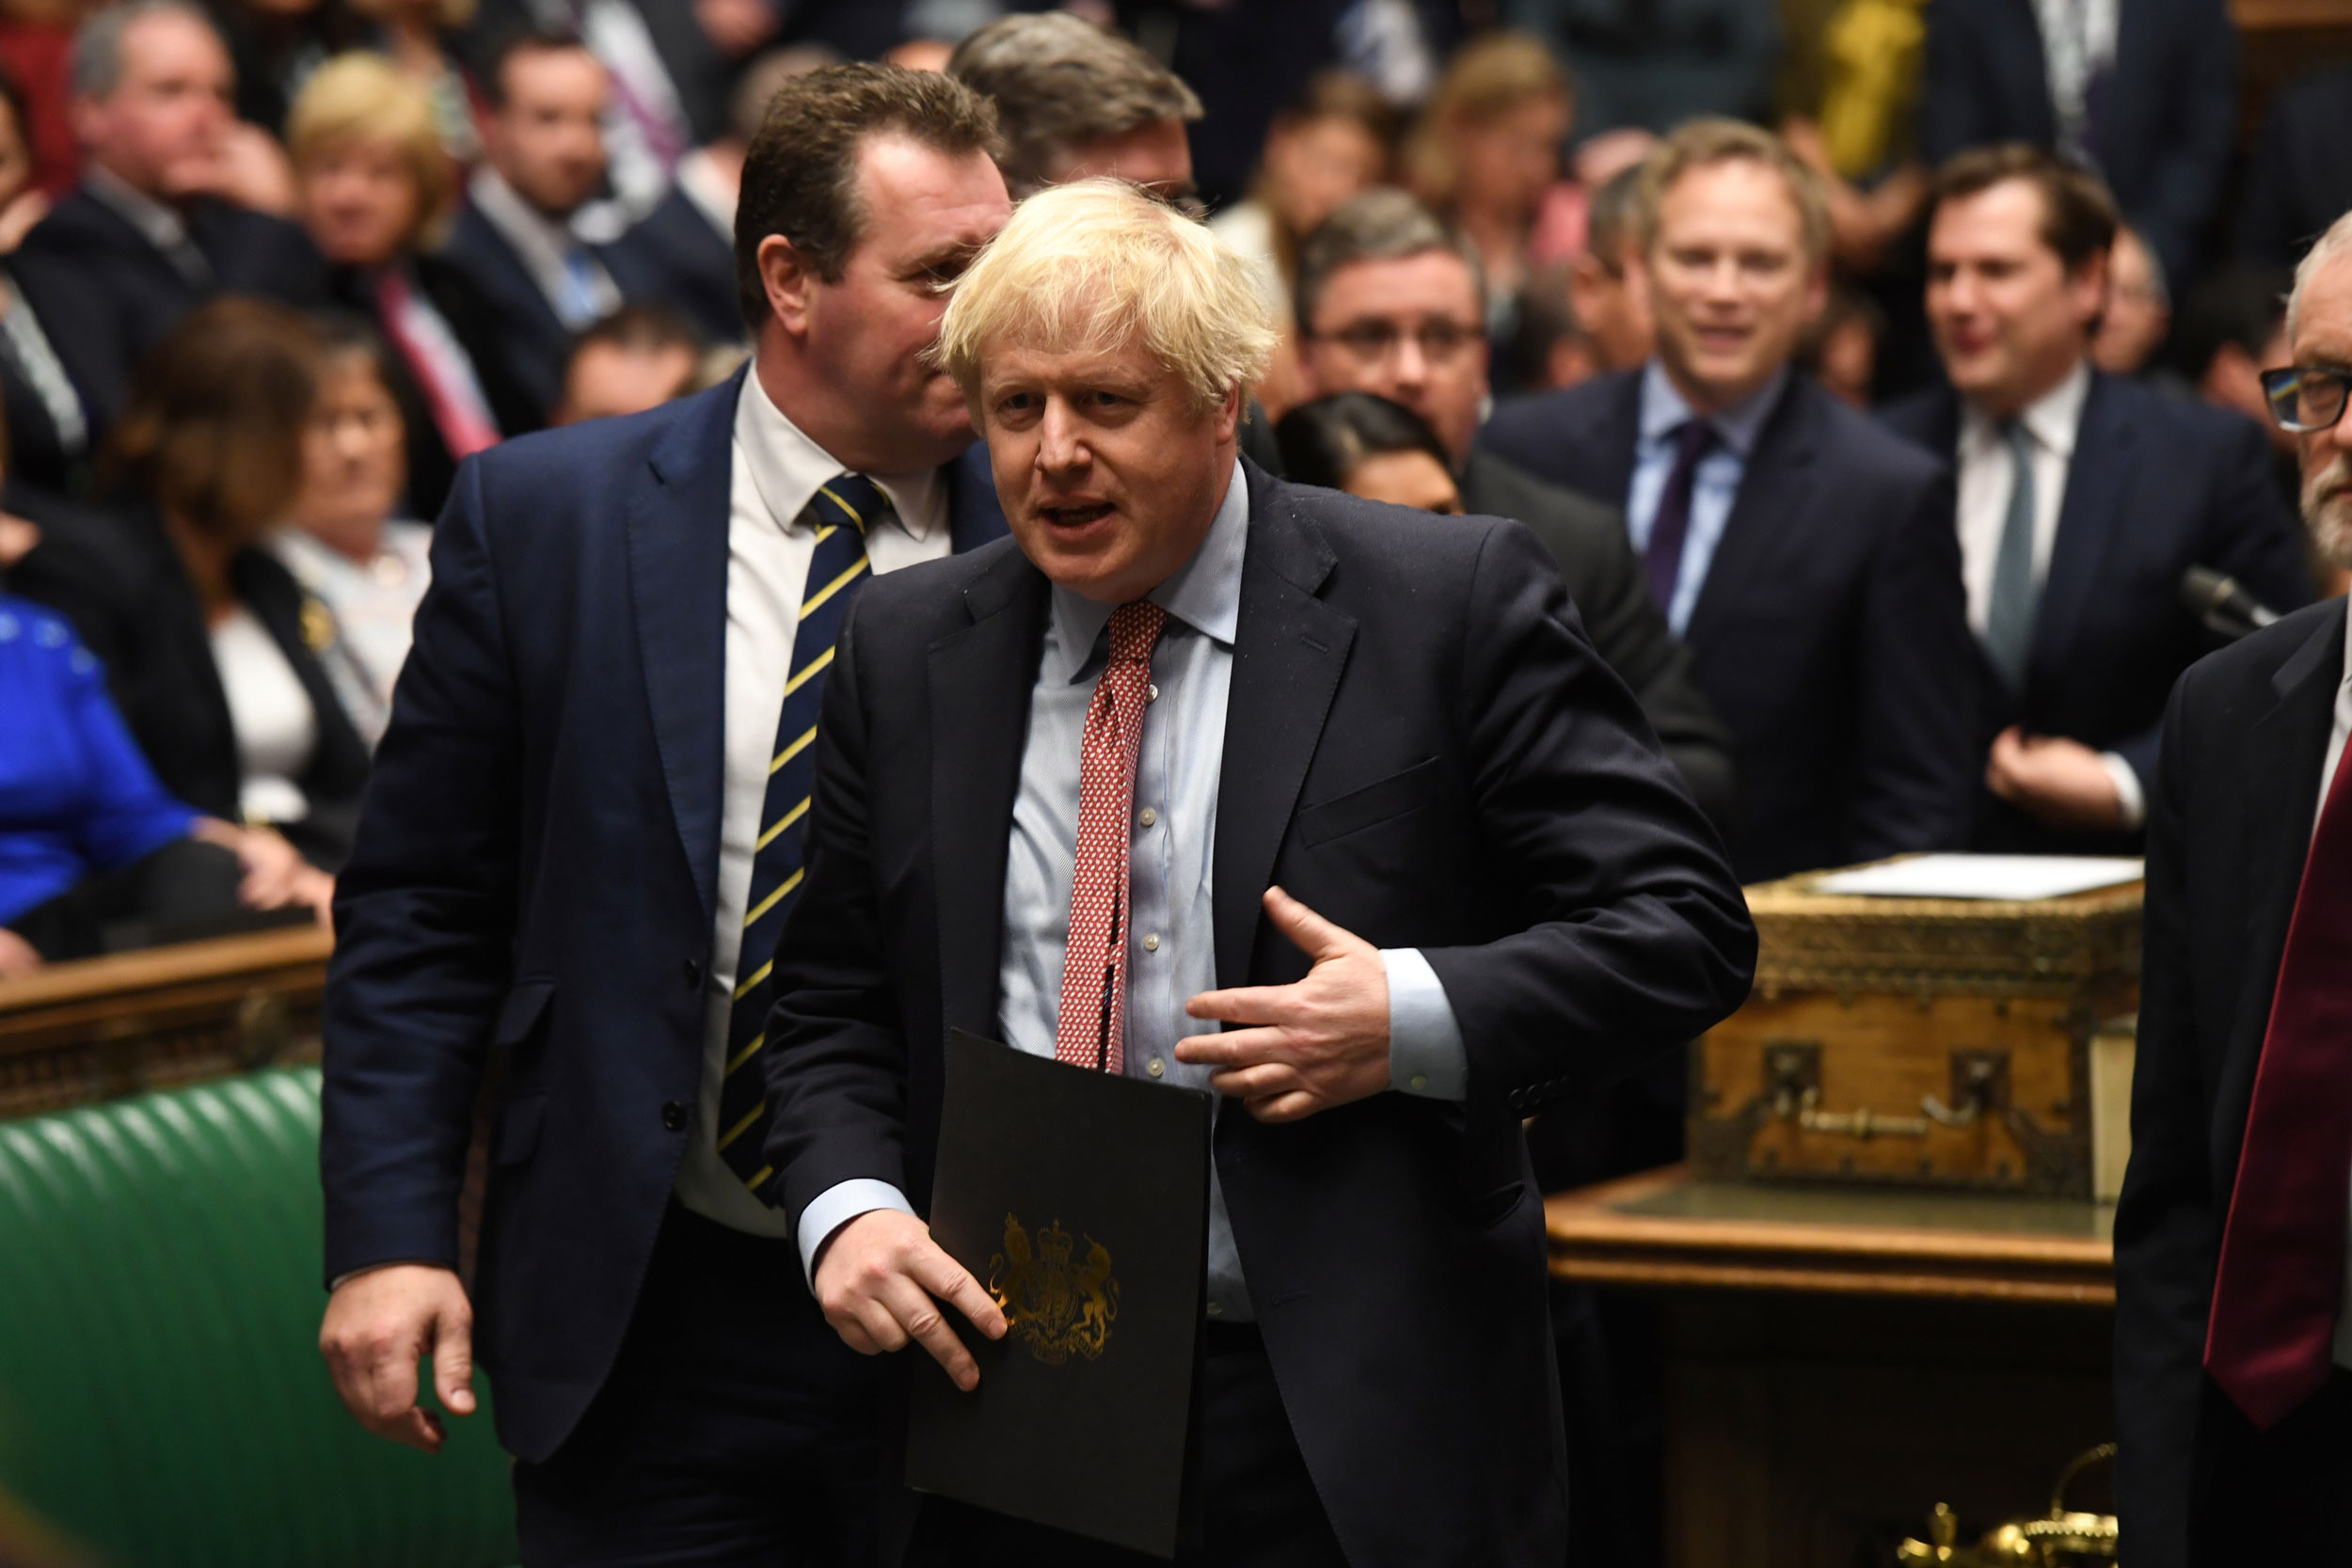 Britain's Prime Minister Boris Johnson is show walking with a folder in his hand and with several other lawmakers behind him.